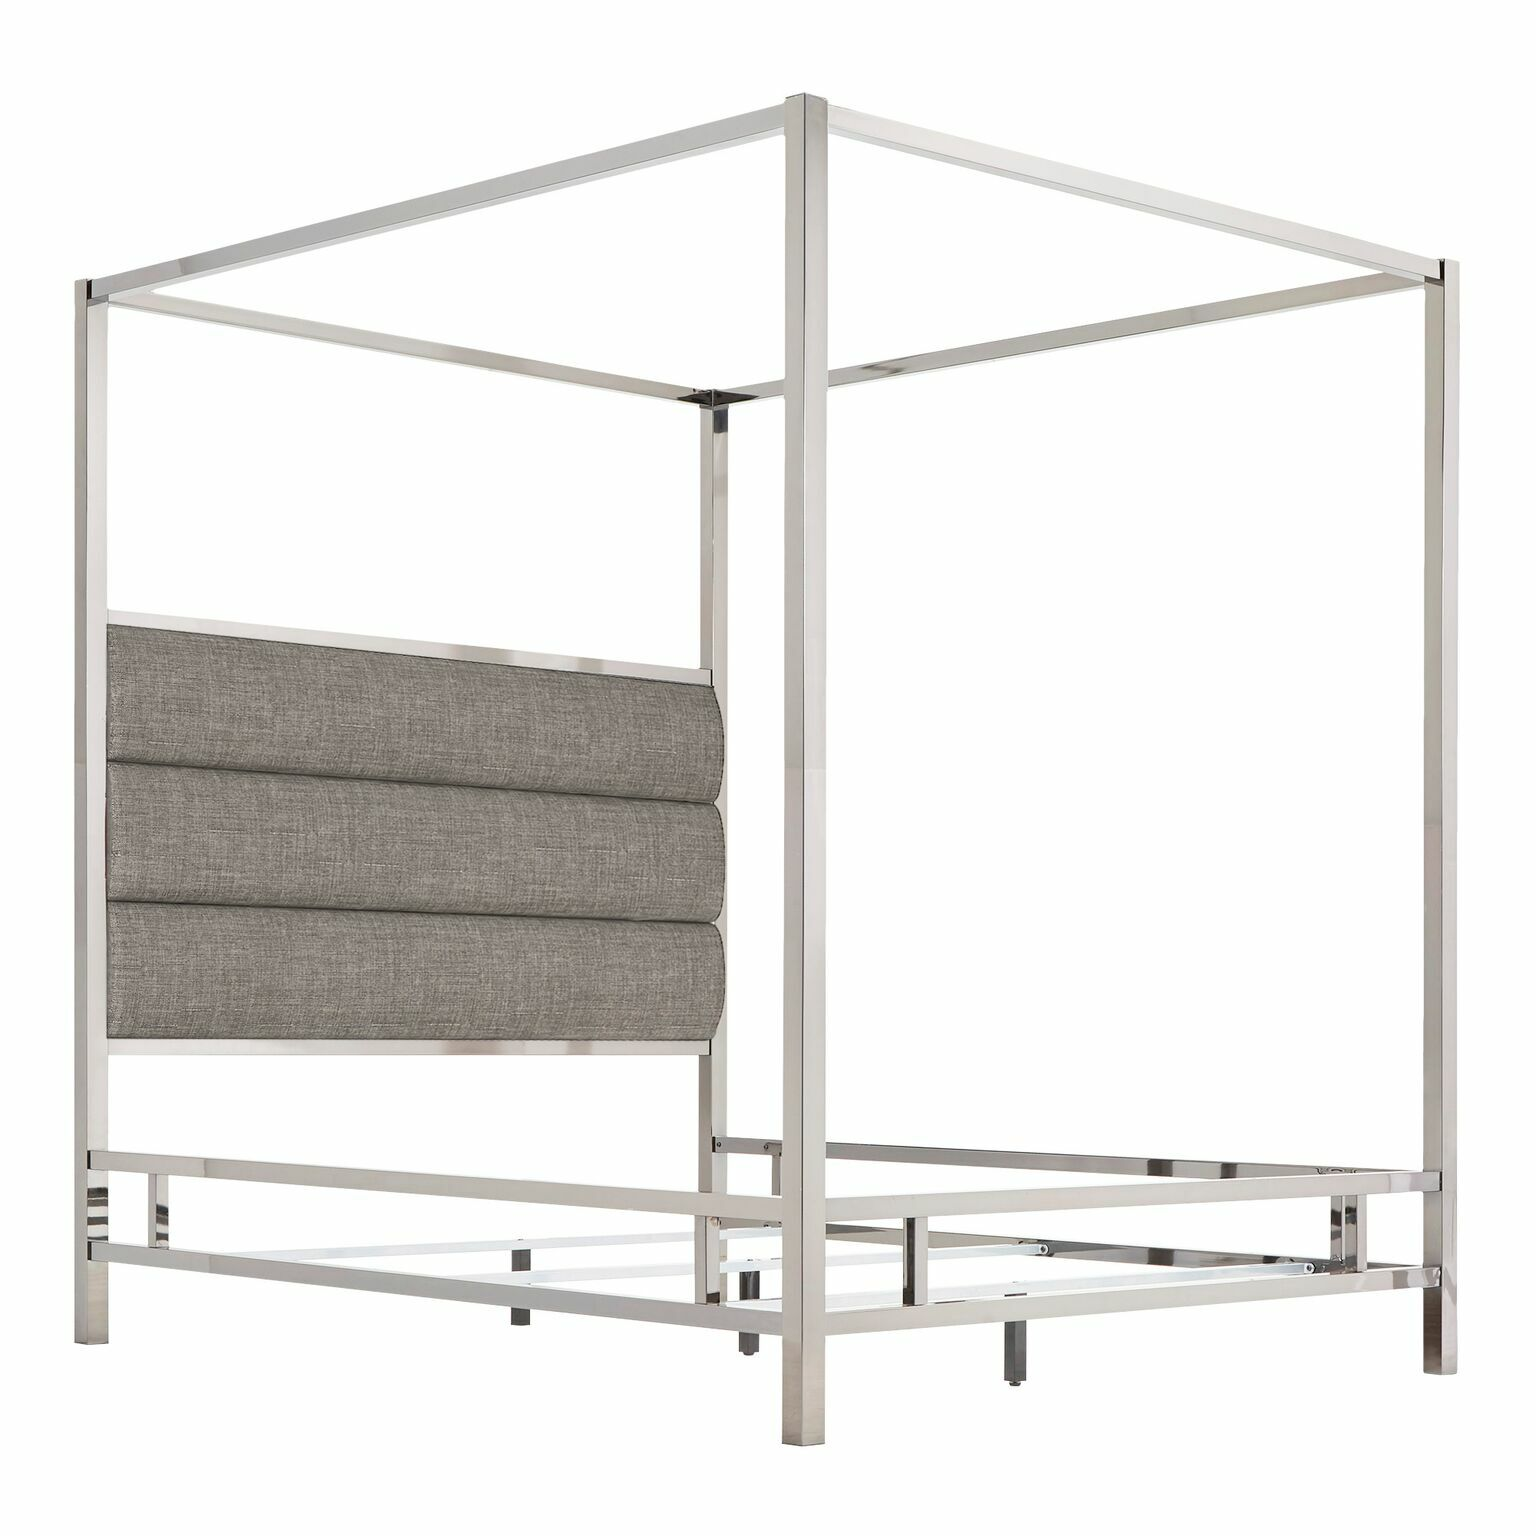 Wicklund Upholstered Canopy Bed Color (Frame/Headboard): Chrome Metal/Gray, Size: Queen